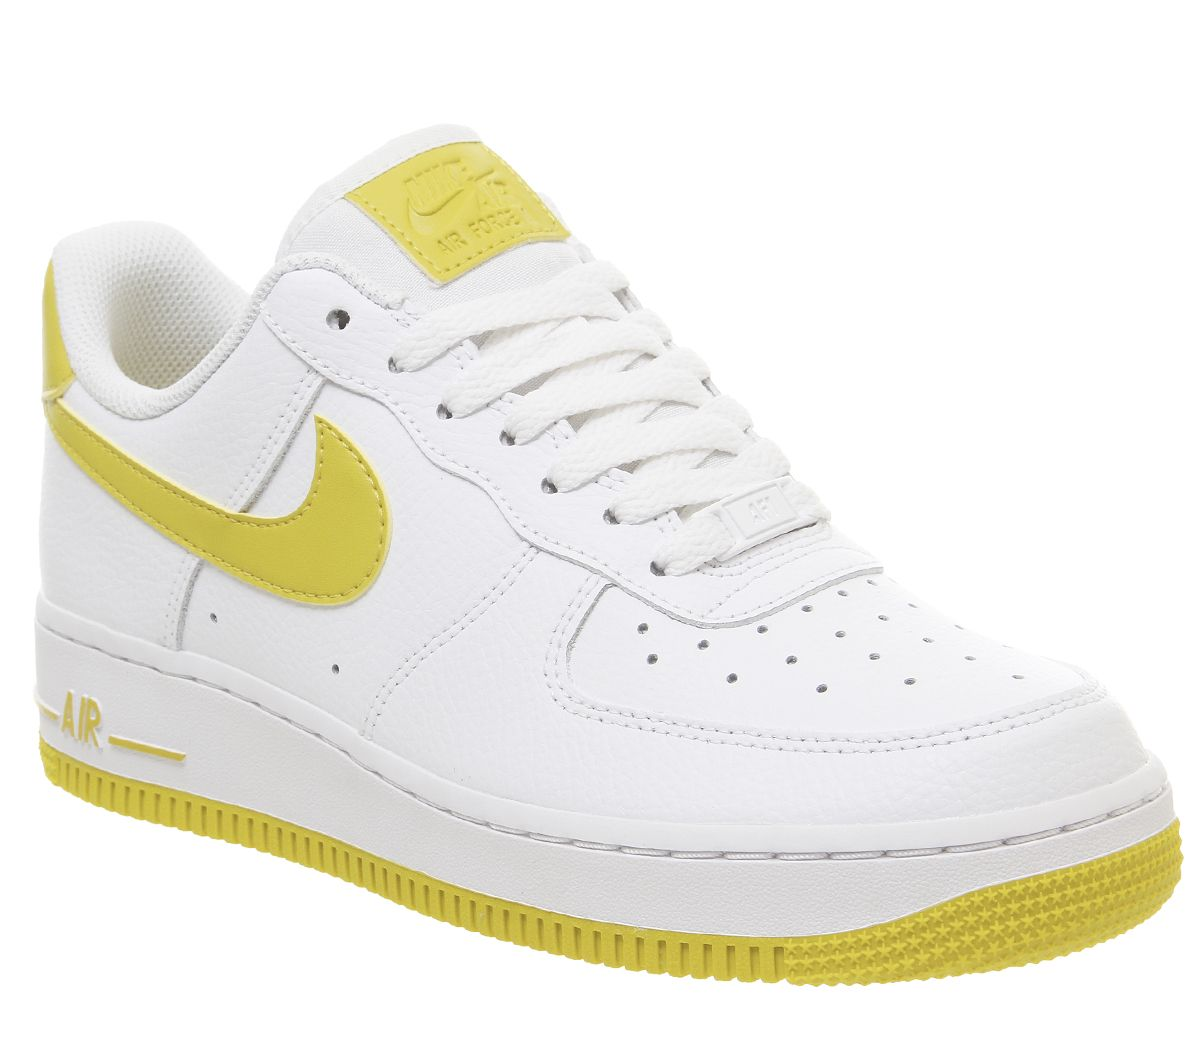 ad9f08d045a347 Nike Air Force 1 07 Trainers White Bright Citron - Hers trainers